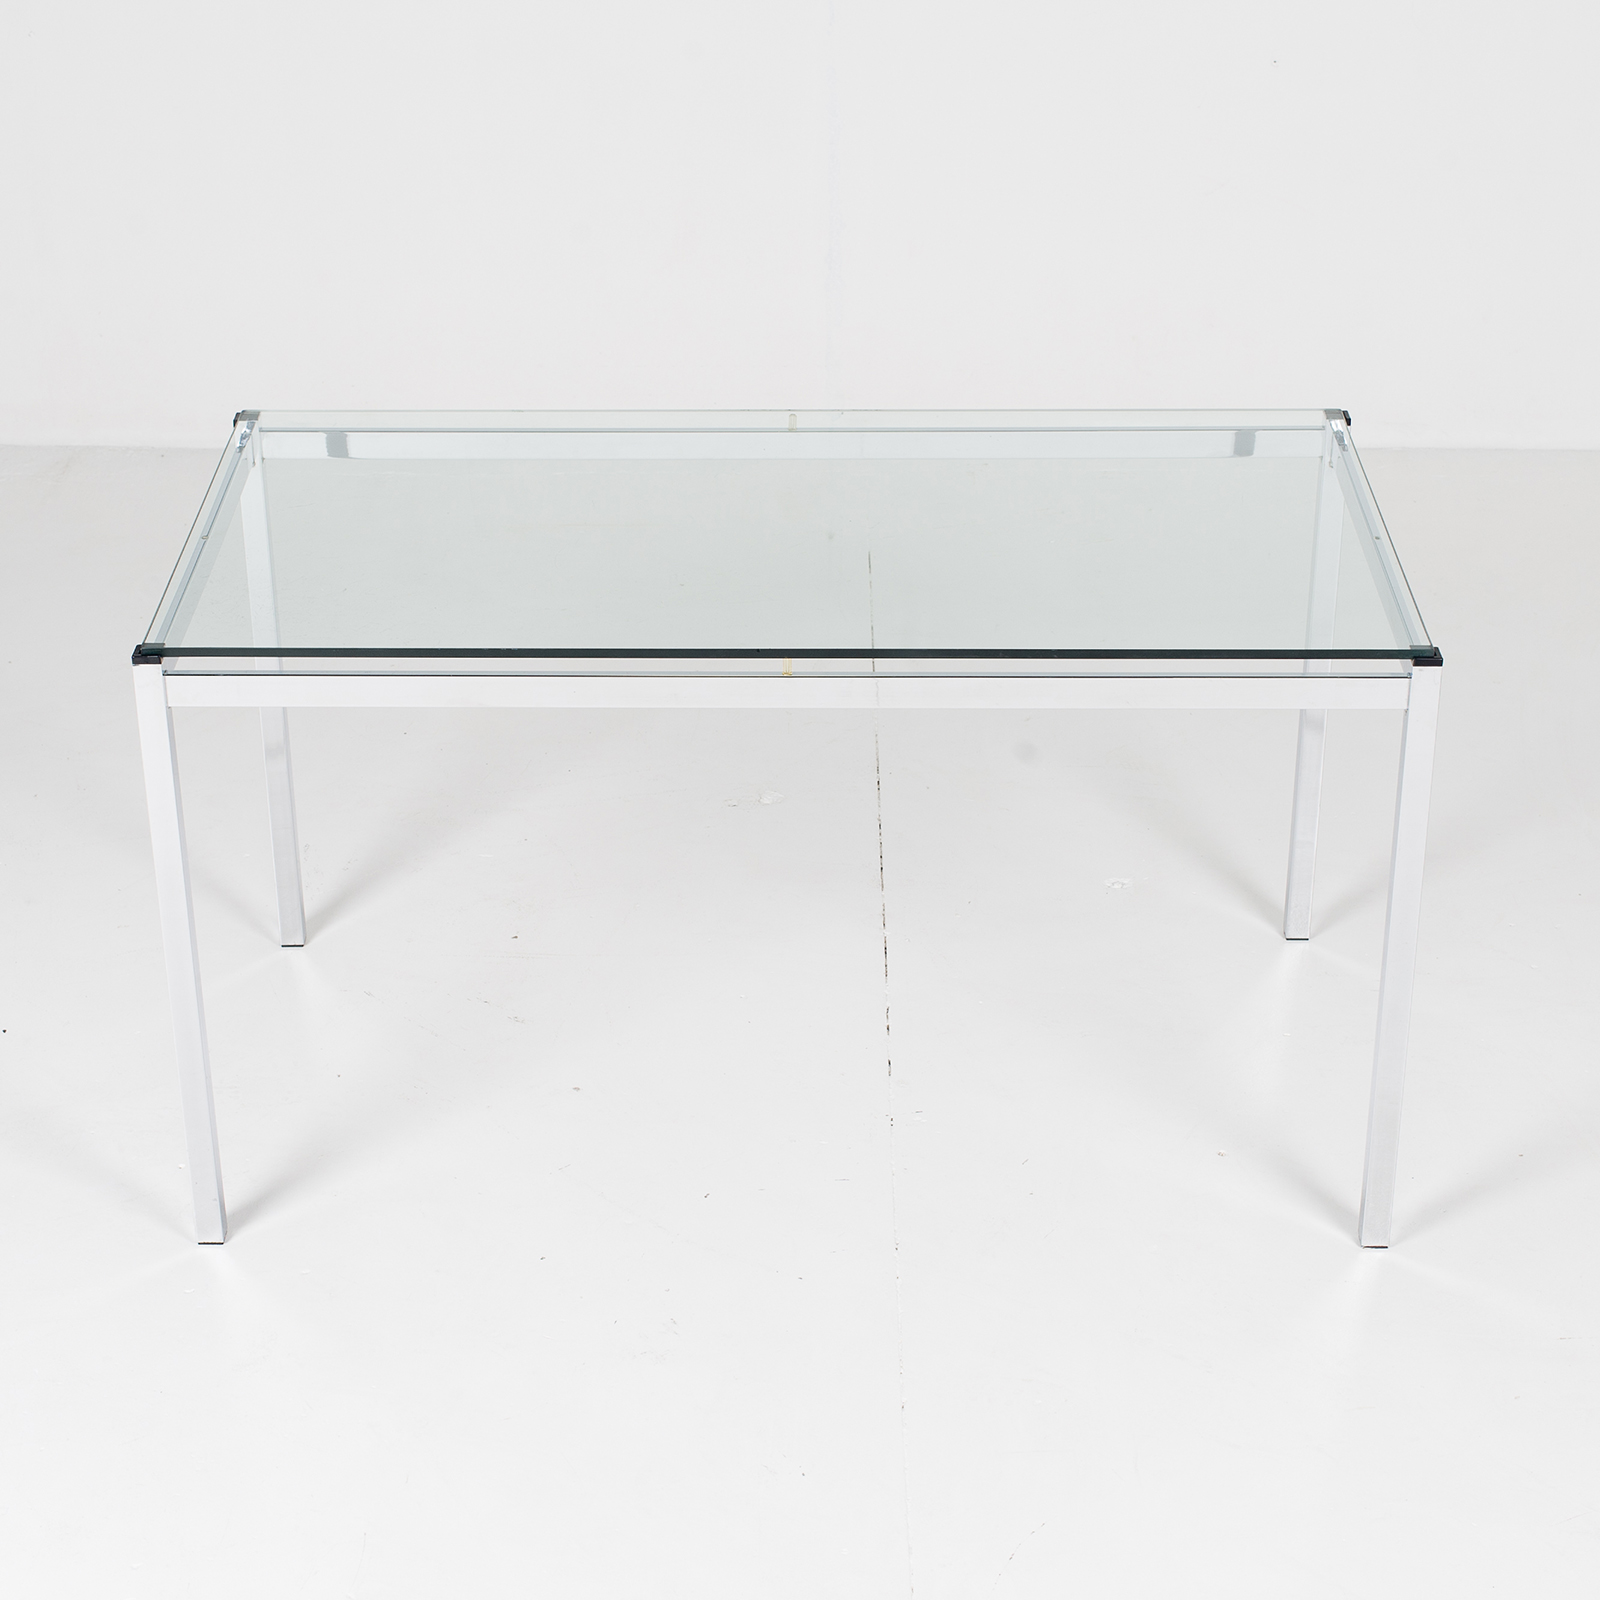 Dining Table In Glass And Chrome, 1970s, The Netherlands807